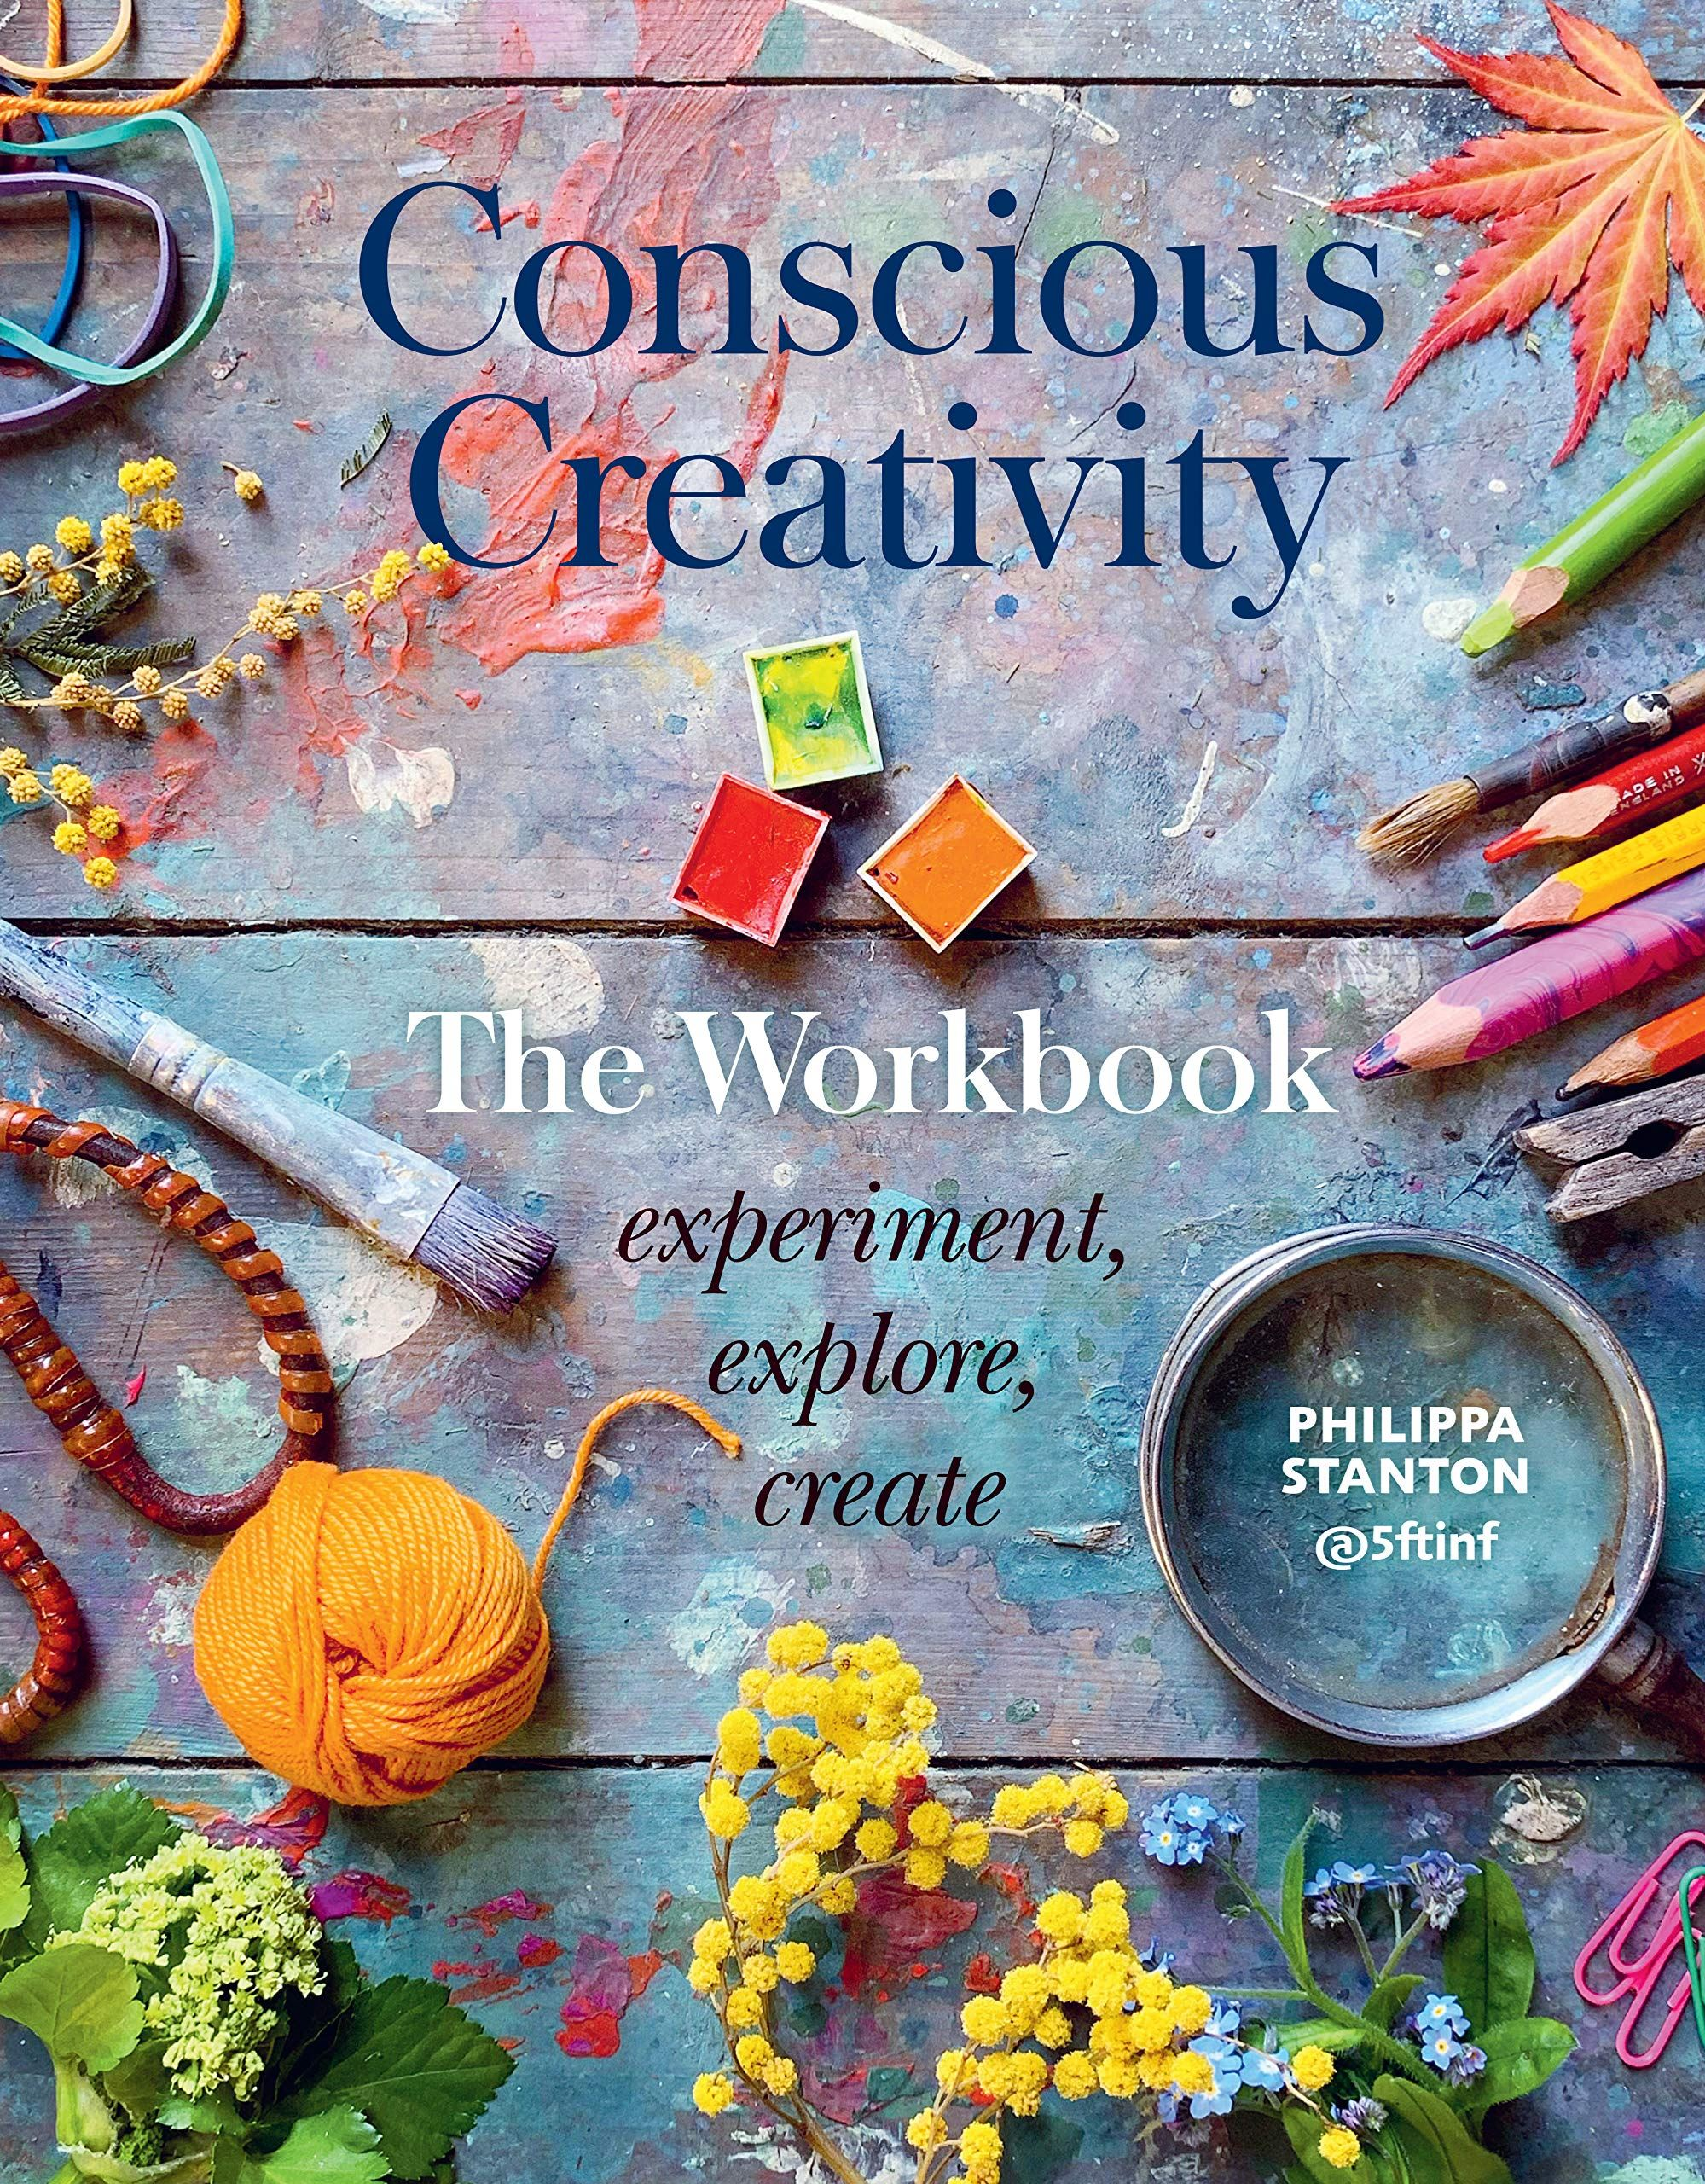 Conscious Creativity: The Workbook by Philippa Stanton